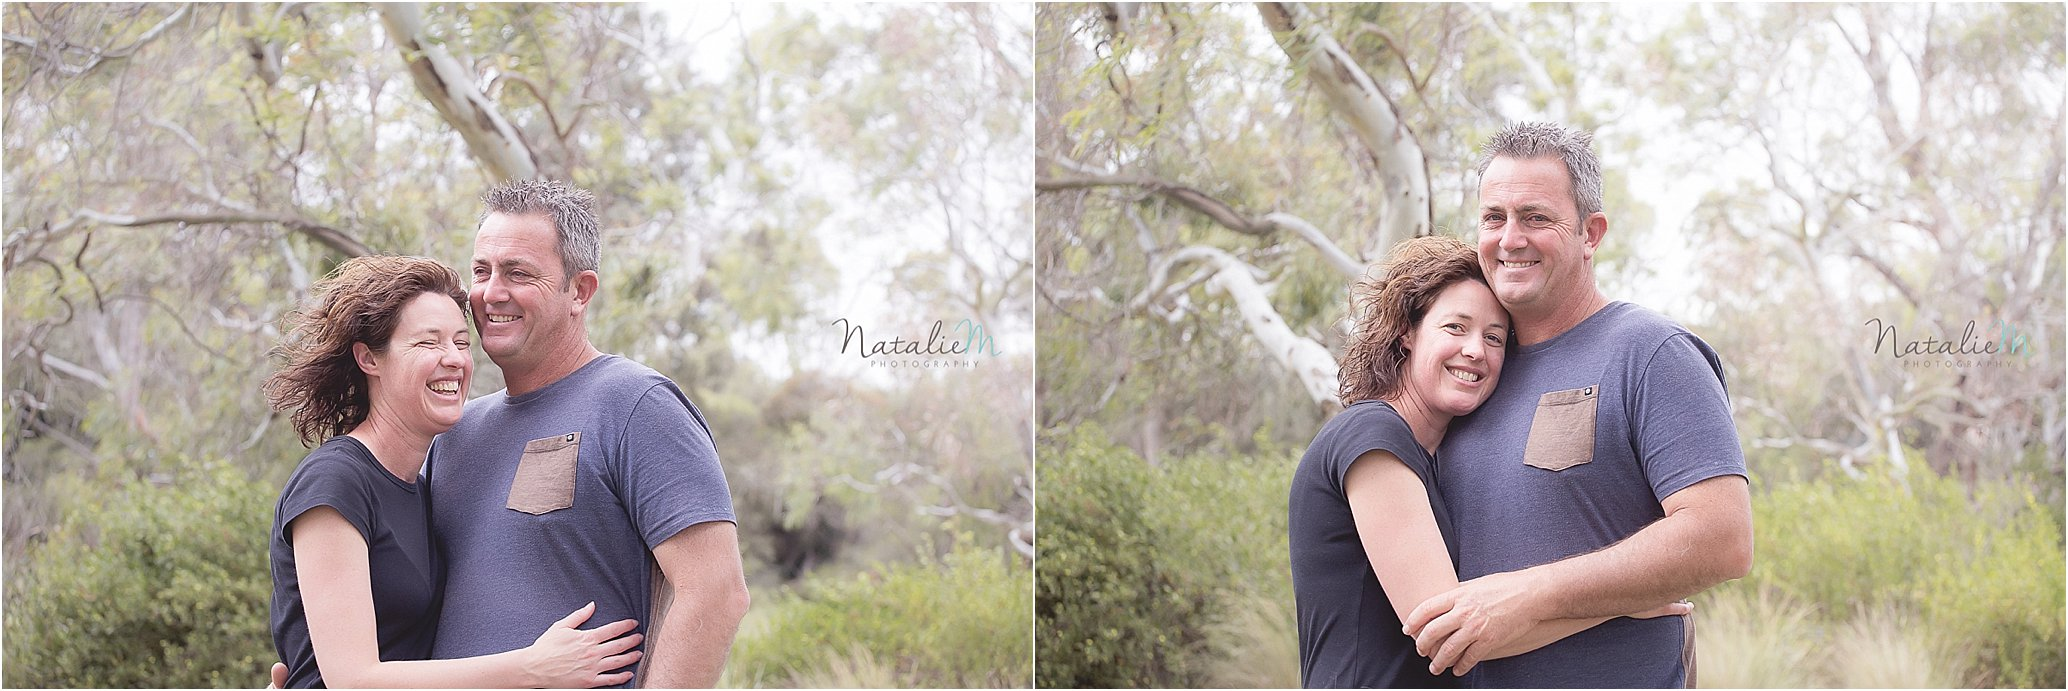 Family Photography Geelong_0285